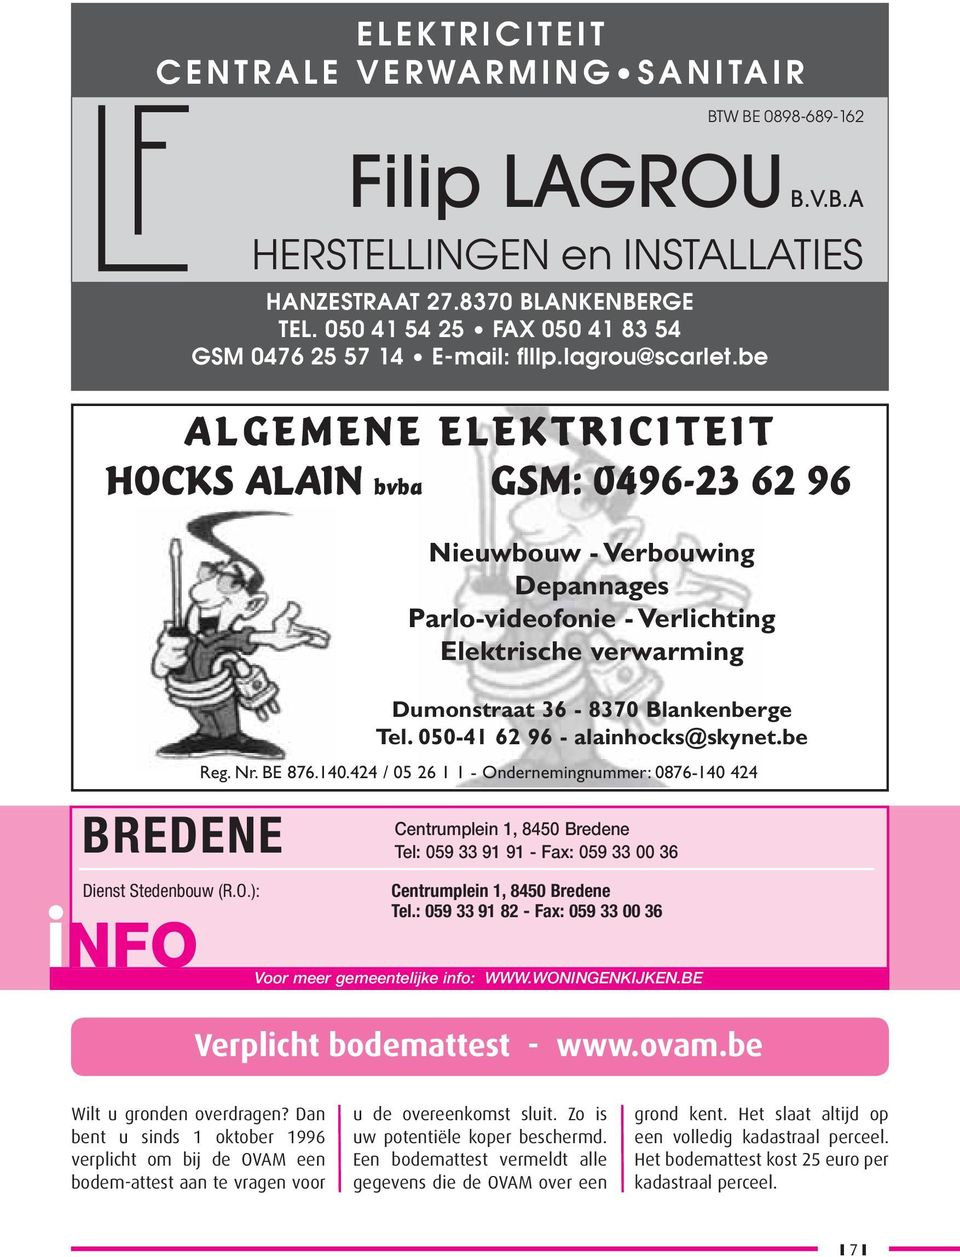 : 058 27.8370 28 88 81 BLANKENBERGE - Fax: 058 28 88 83 TEL. 050 41 54 25 FAX 050 41 83 54 GSM 0476 25 57 14 E-mail: fl llp.lagrou@scarlet.